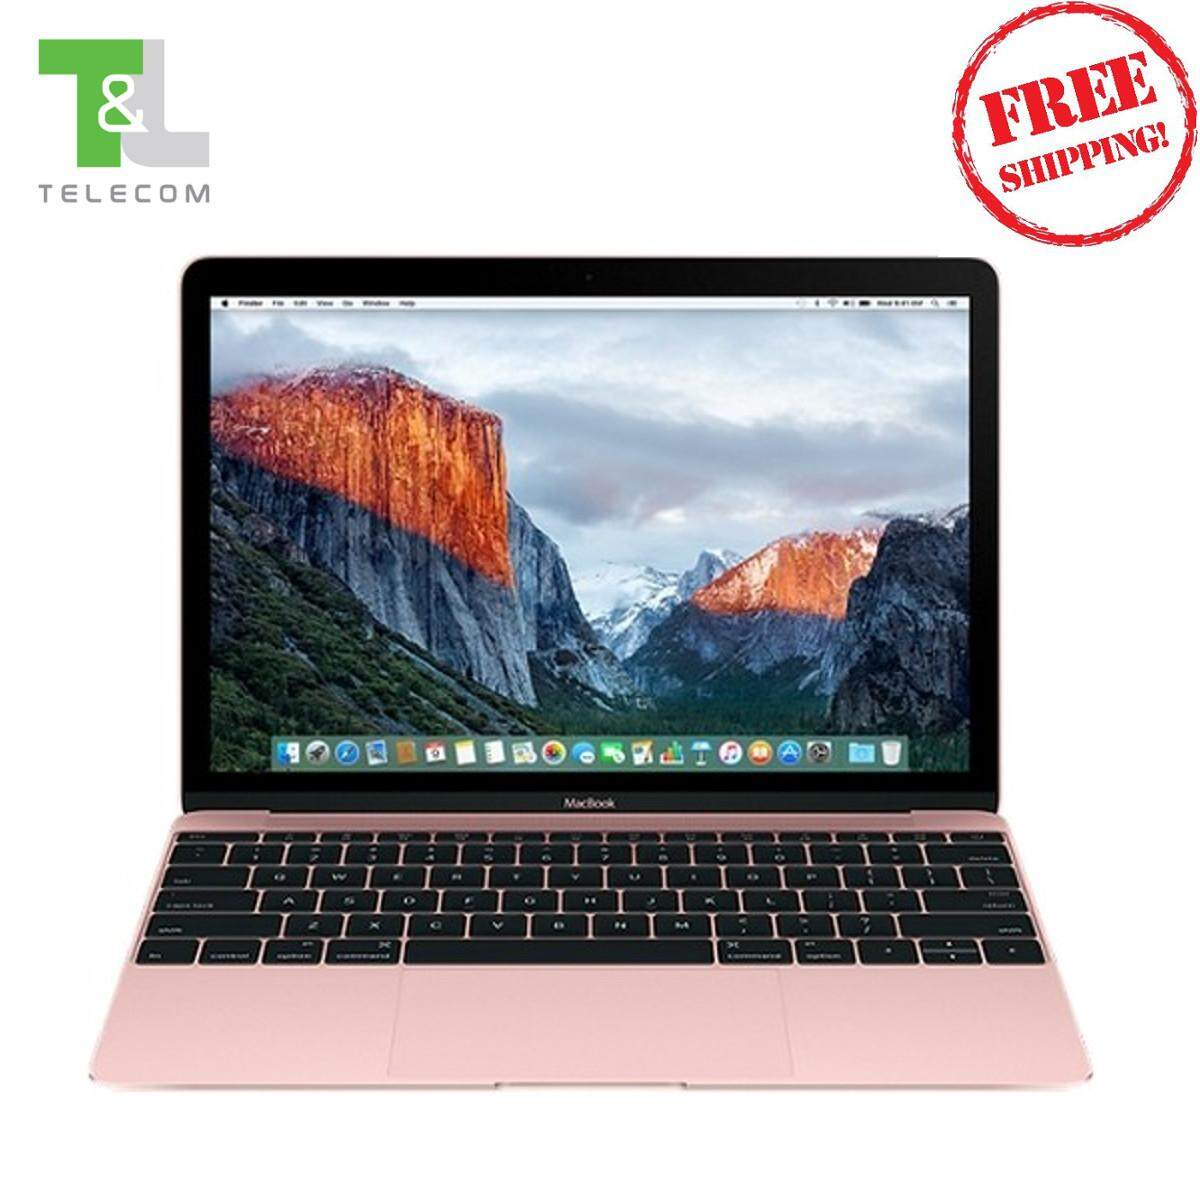 Apple MacBook 12 inch 1.2GHz 512GB Dual-core Intel Core (Rose Gold) MMGM2ZP/A - 2016 version / New / Sealed / Ready Stock / Official 1-Year Warranty Apple Malaysia Malaysia